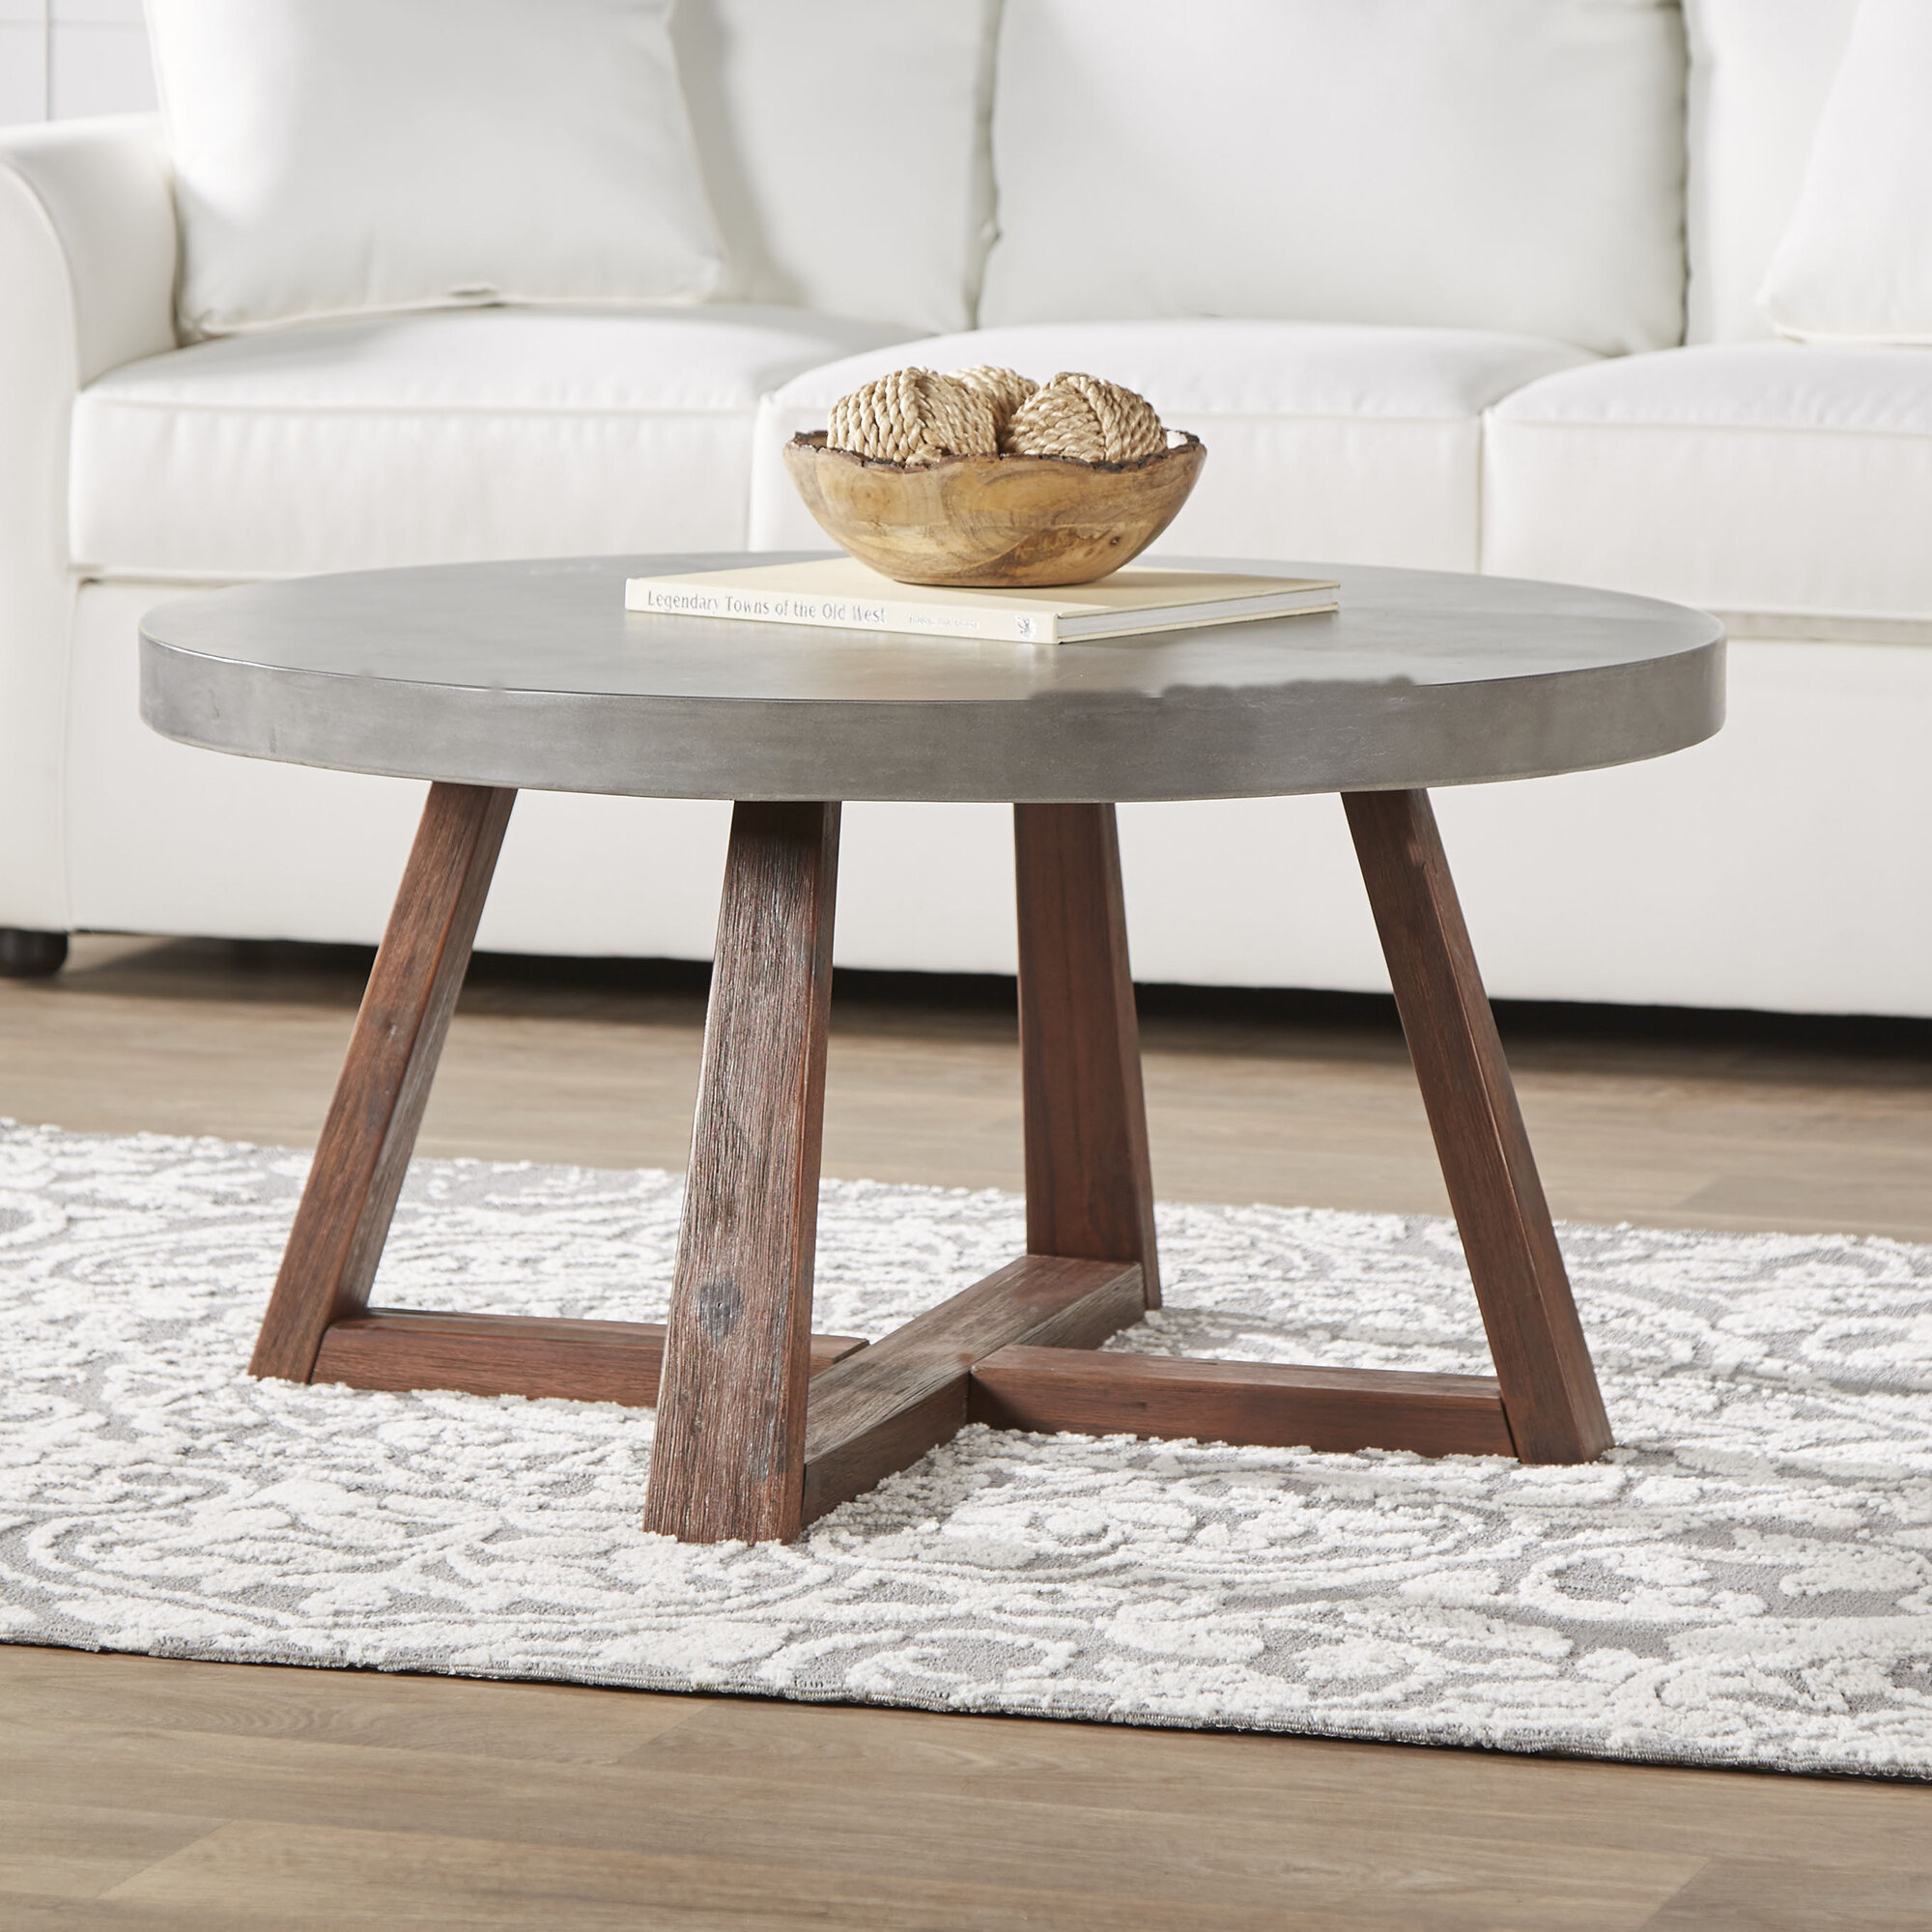 table end with slate craftsman revington products american tile item number oak peters